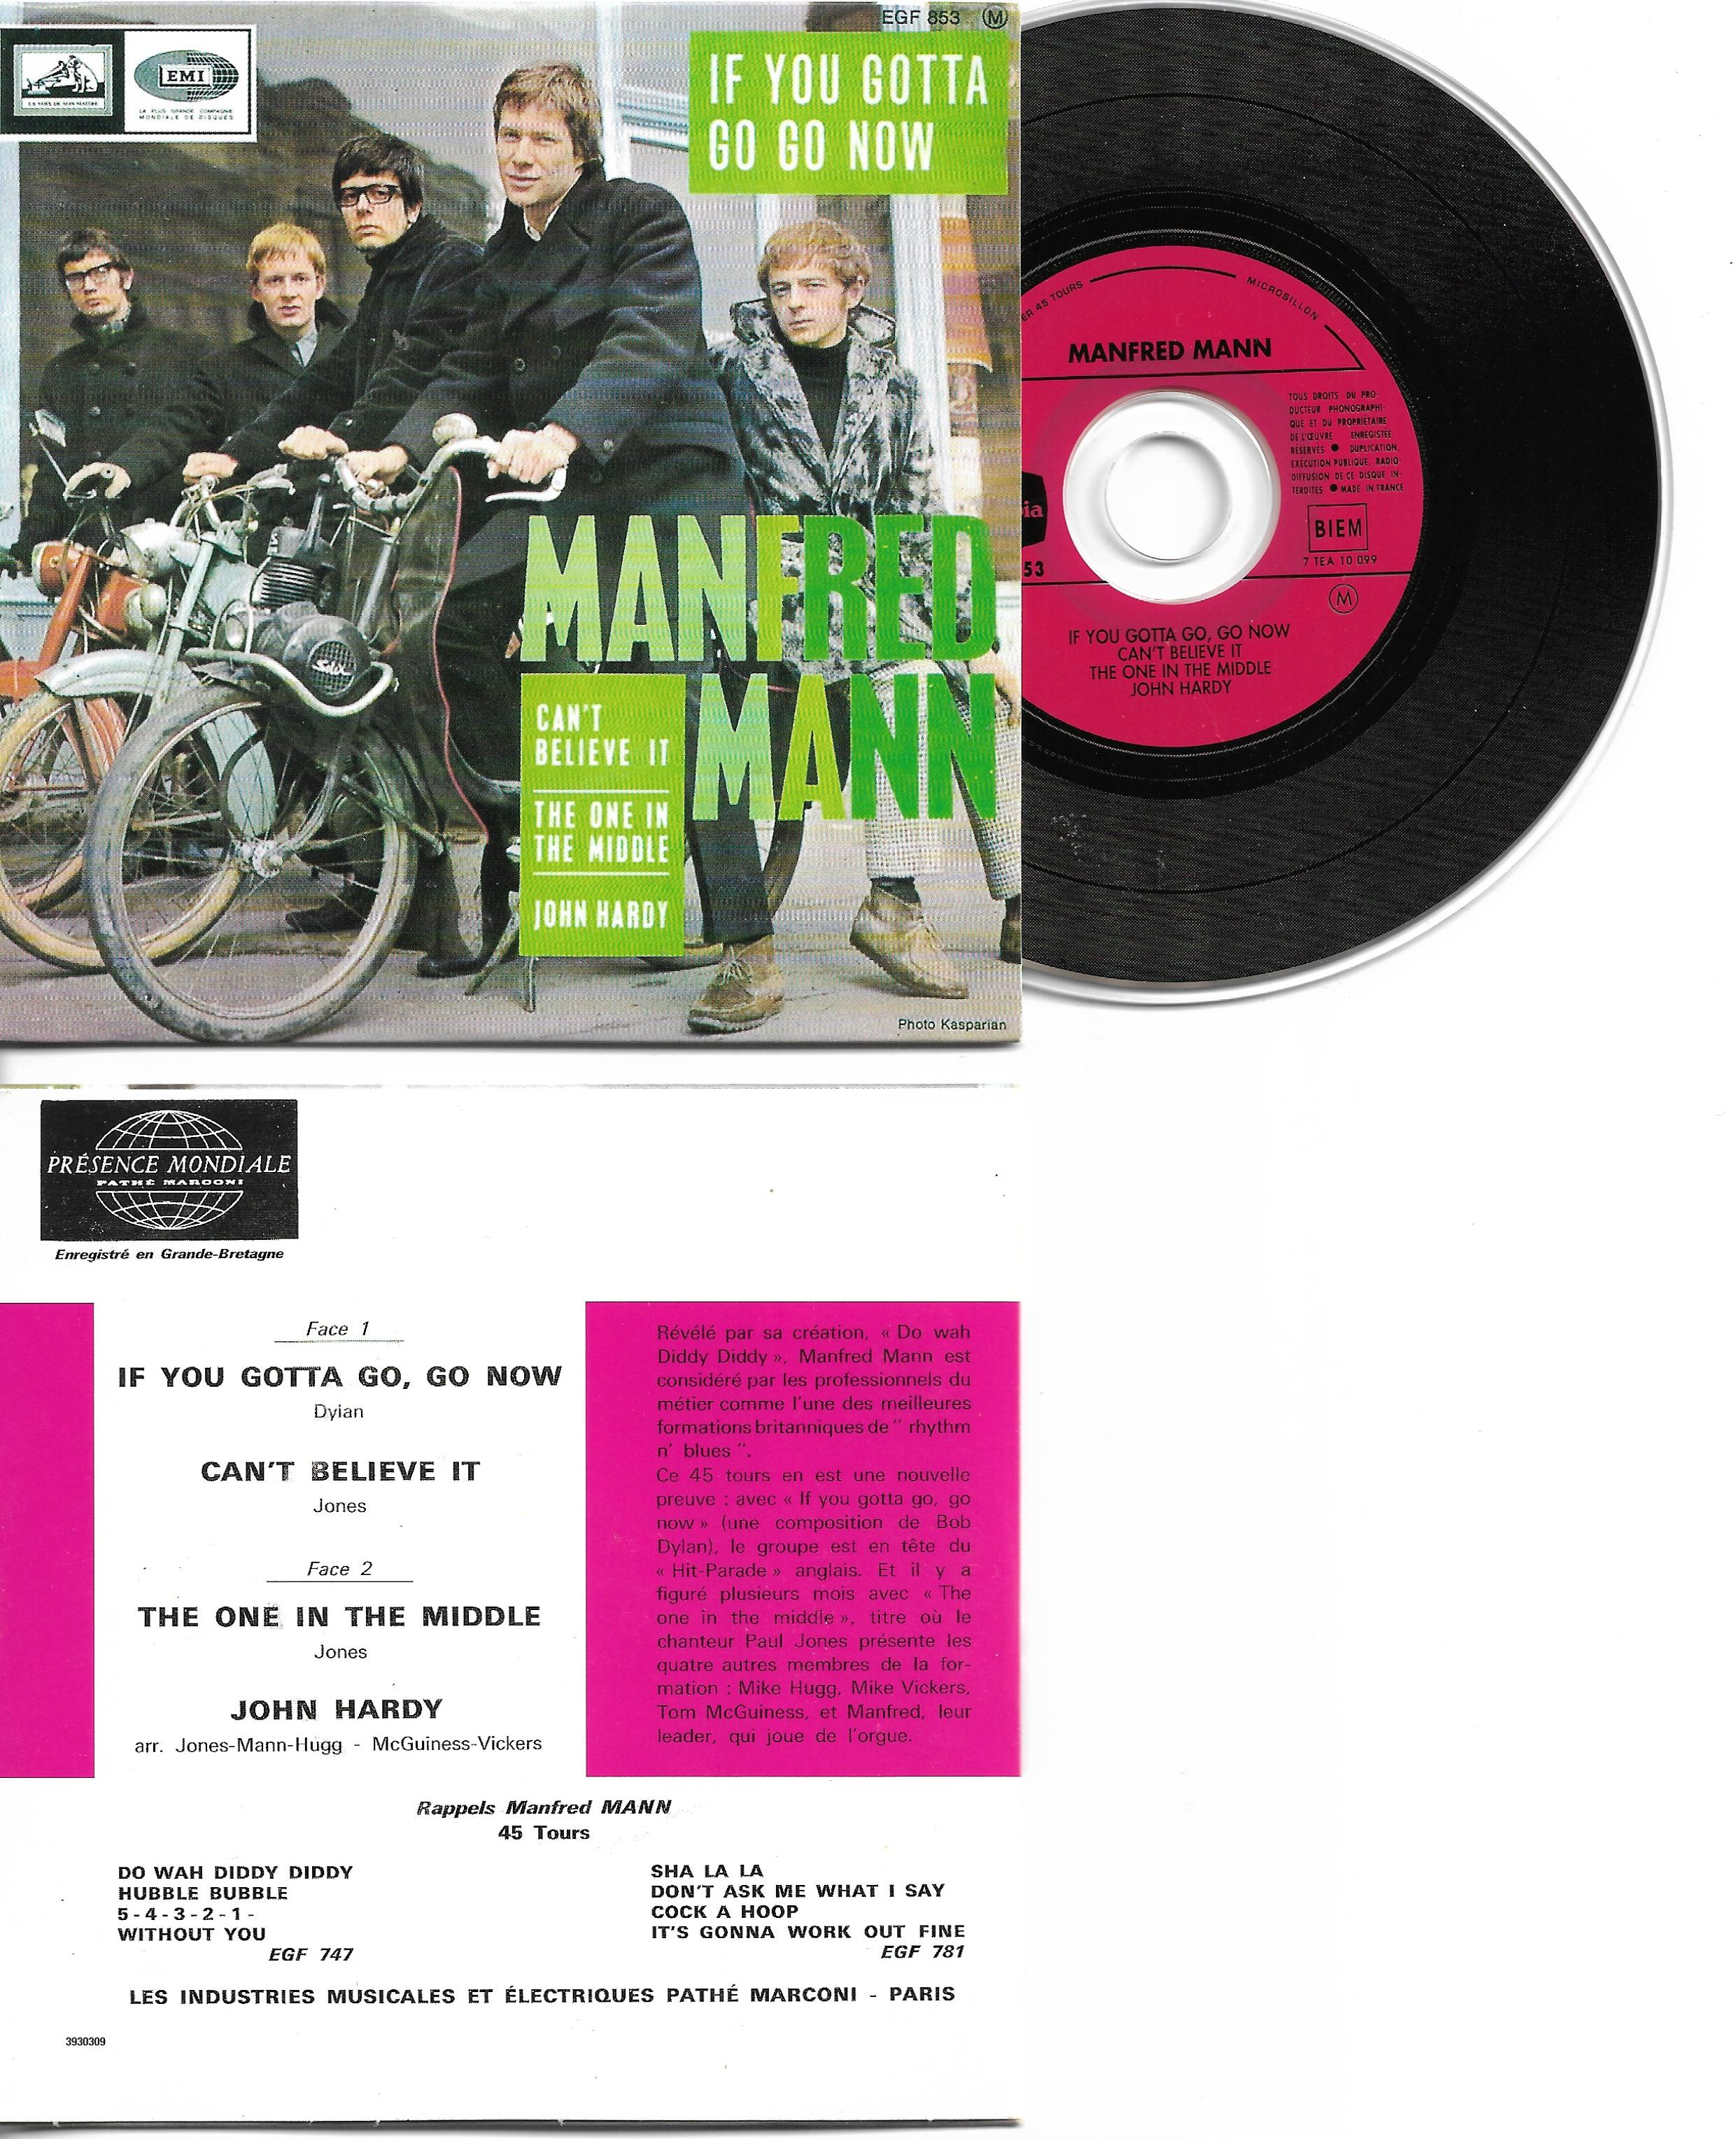 MANFRED MANN - If you gotta go go - Can't believe it -The one in the middle - John Hardy - EP 4-track CARD SLEEVE - - CD single